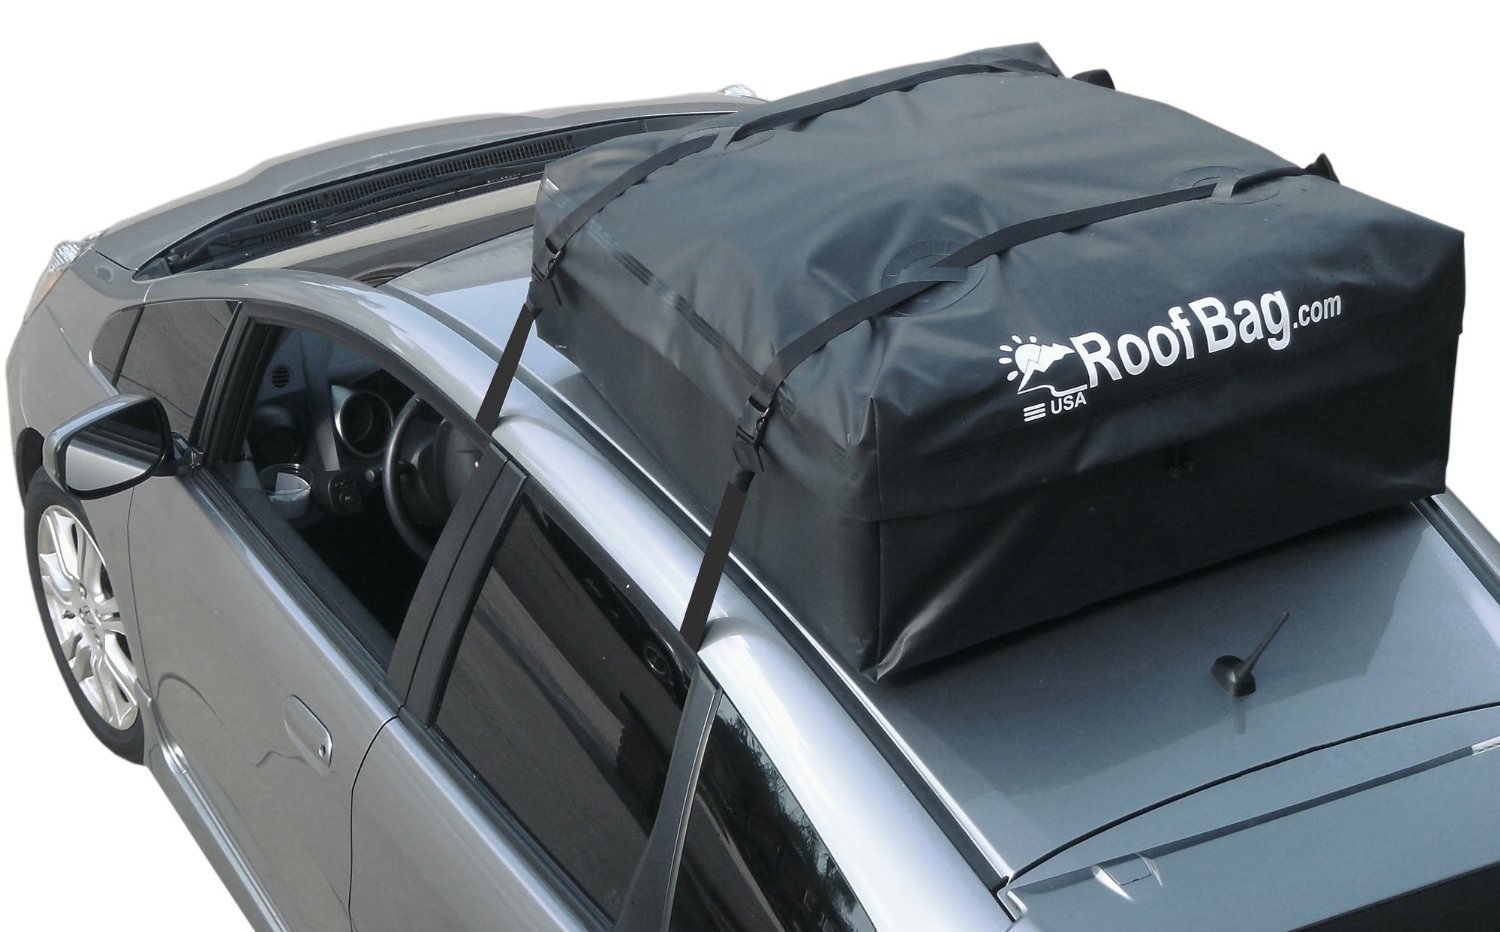 Amazon RoofBag 100 Waterproof Carrier Bundle Includes Protective Roof Mat Storage Bag For Storing Heavy Duty Straps Cross Country Soft Car Top